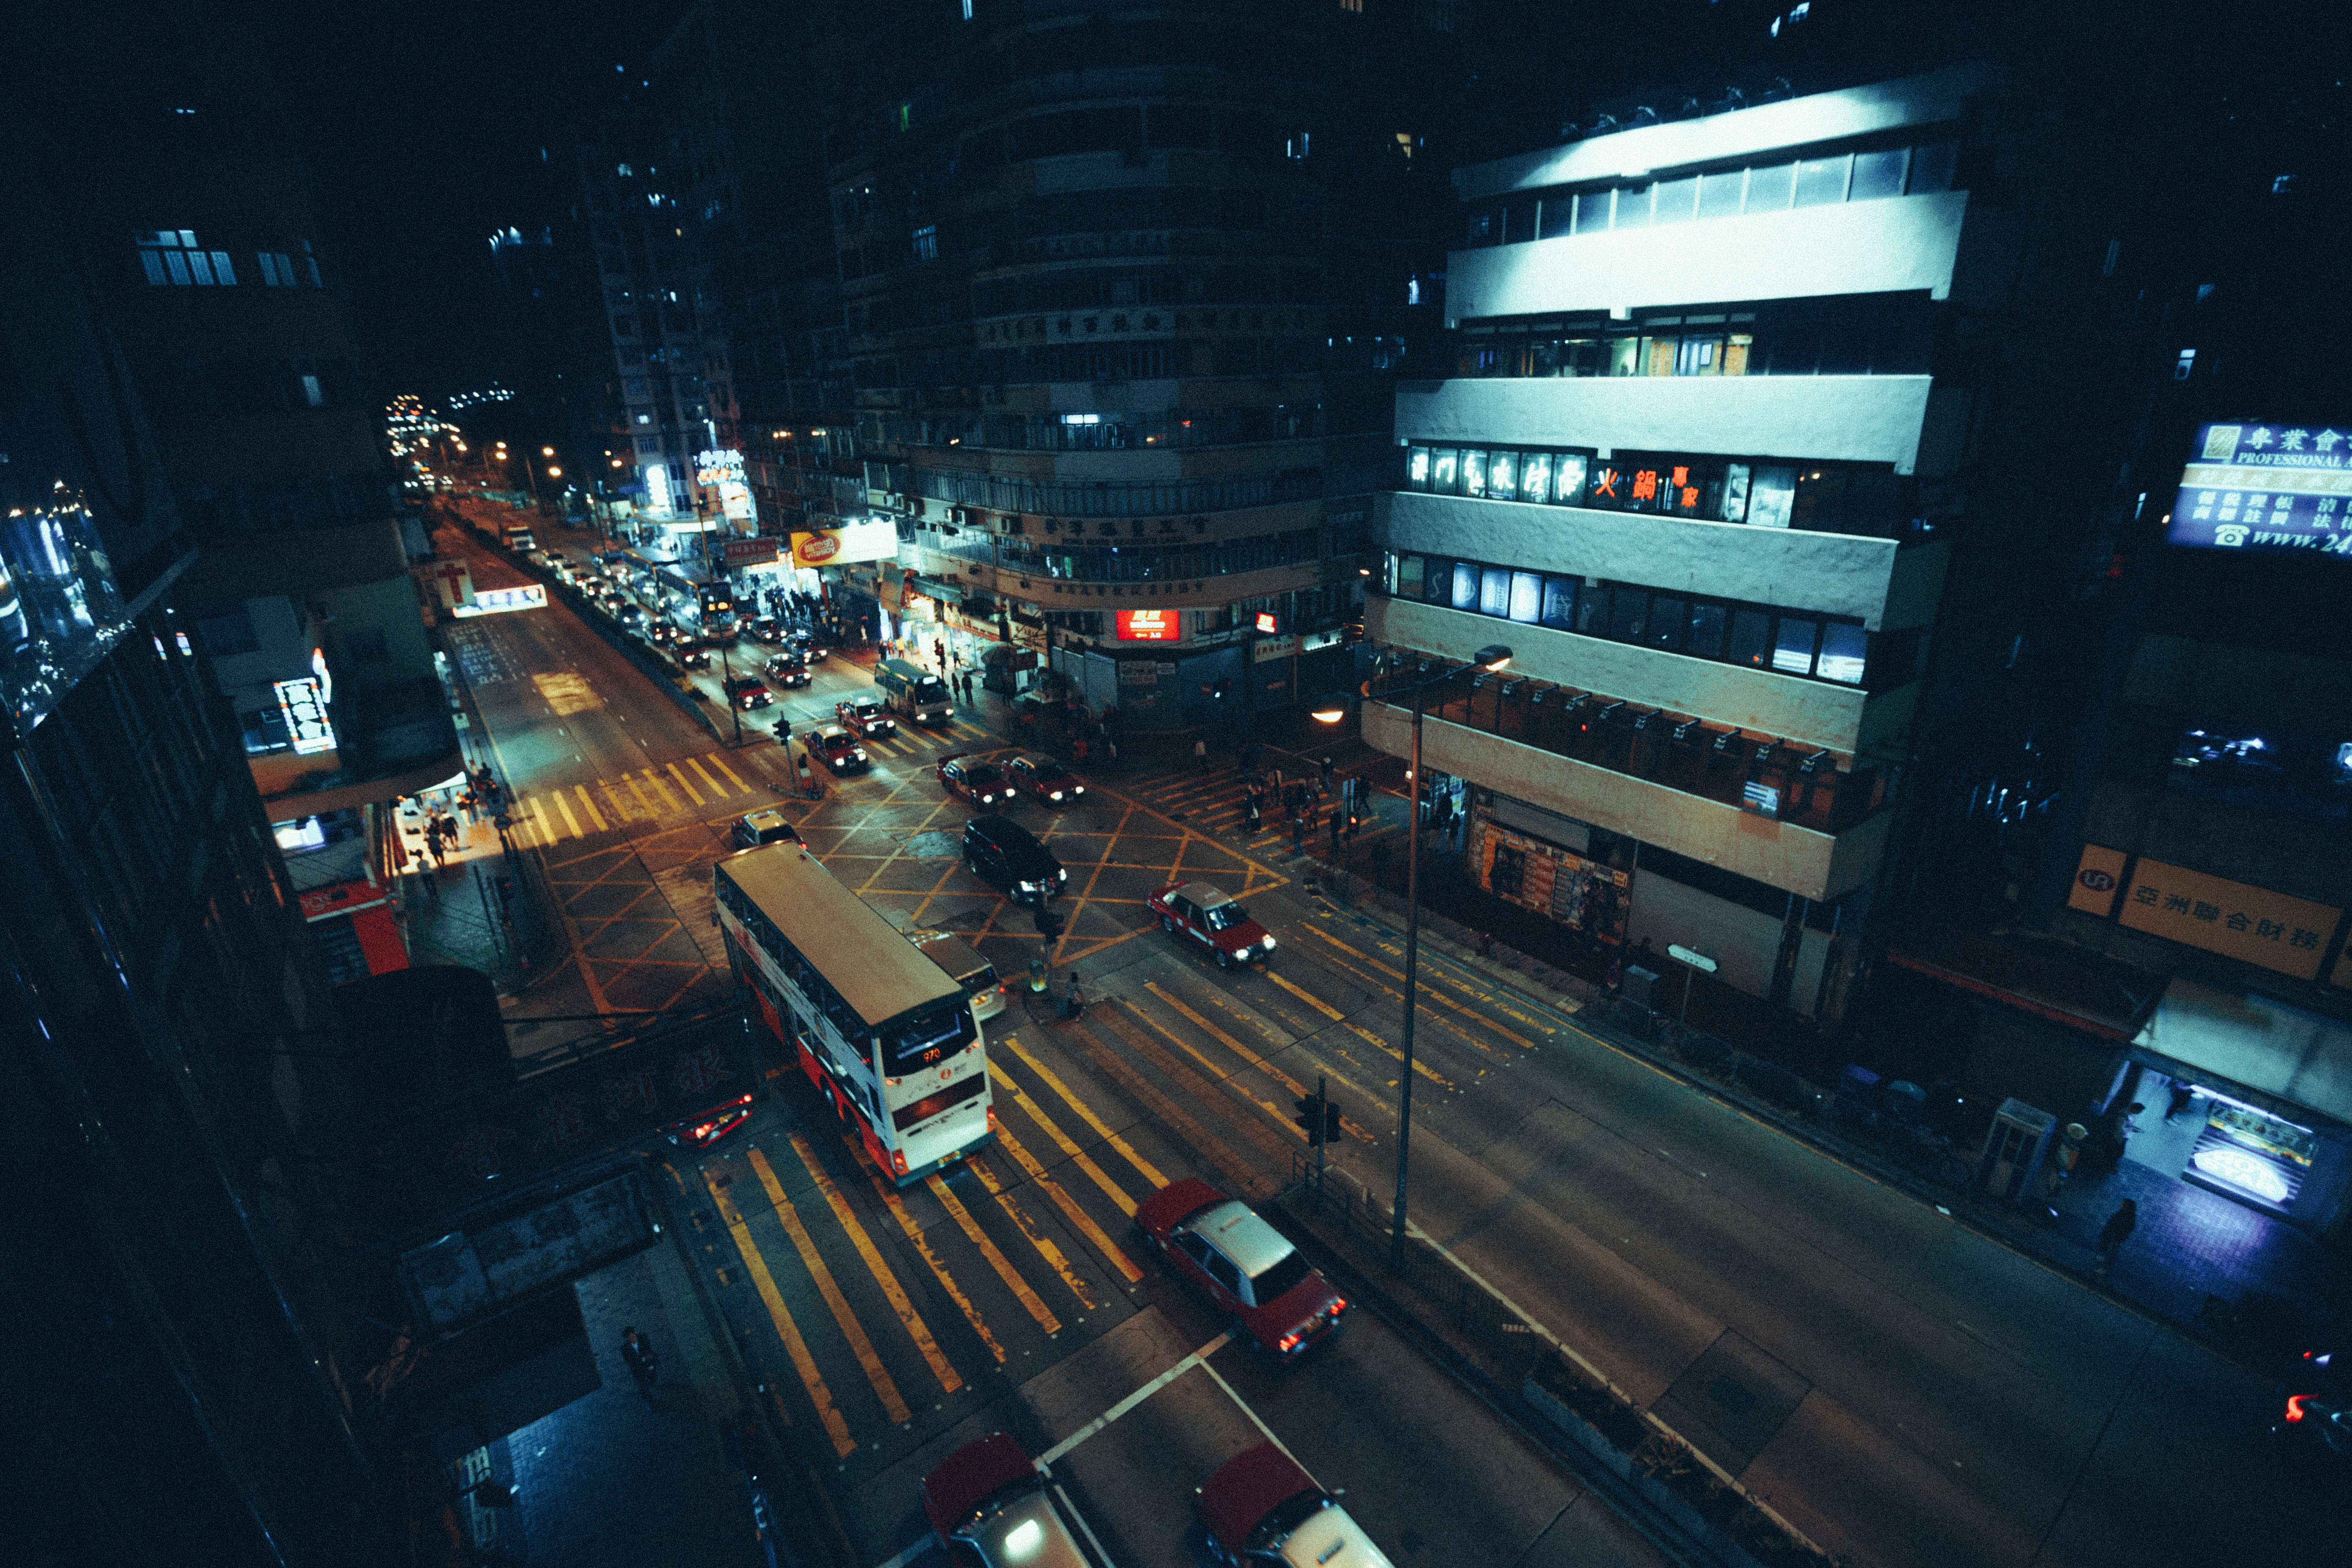 photo of white bus on road during nighttime